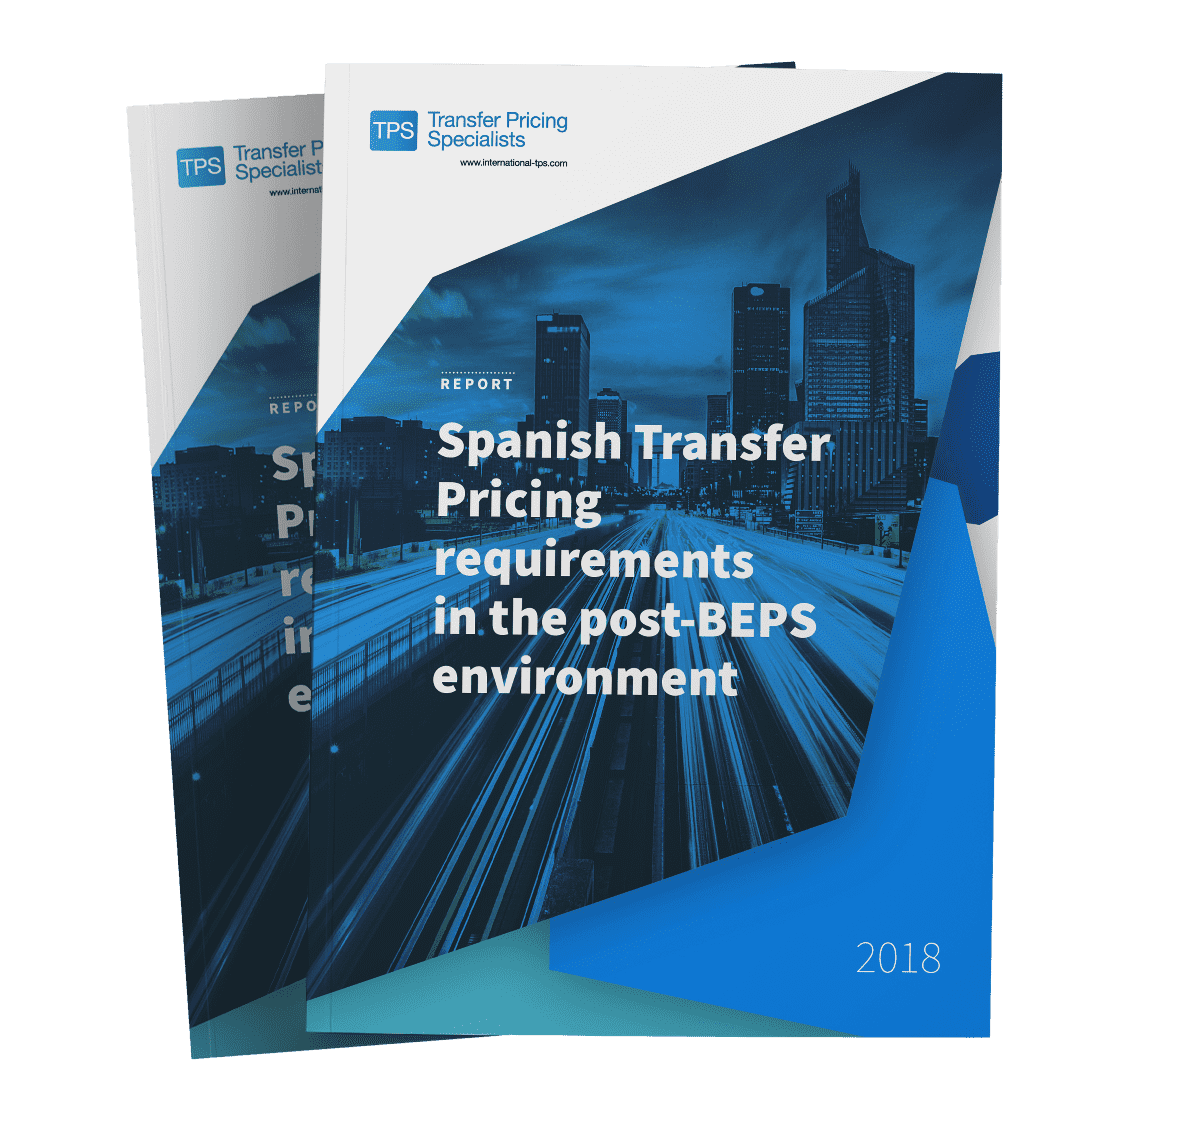 Transfer Pricing Requirements in Spain after BEPS implementations